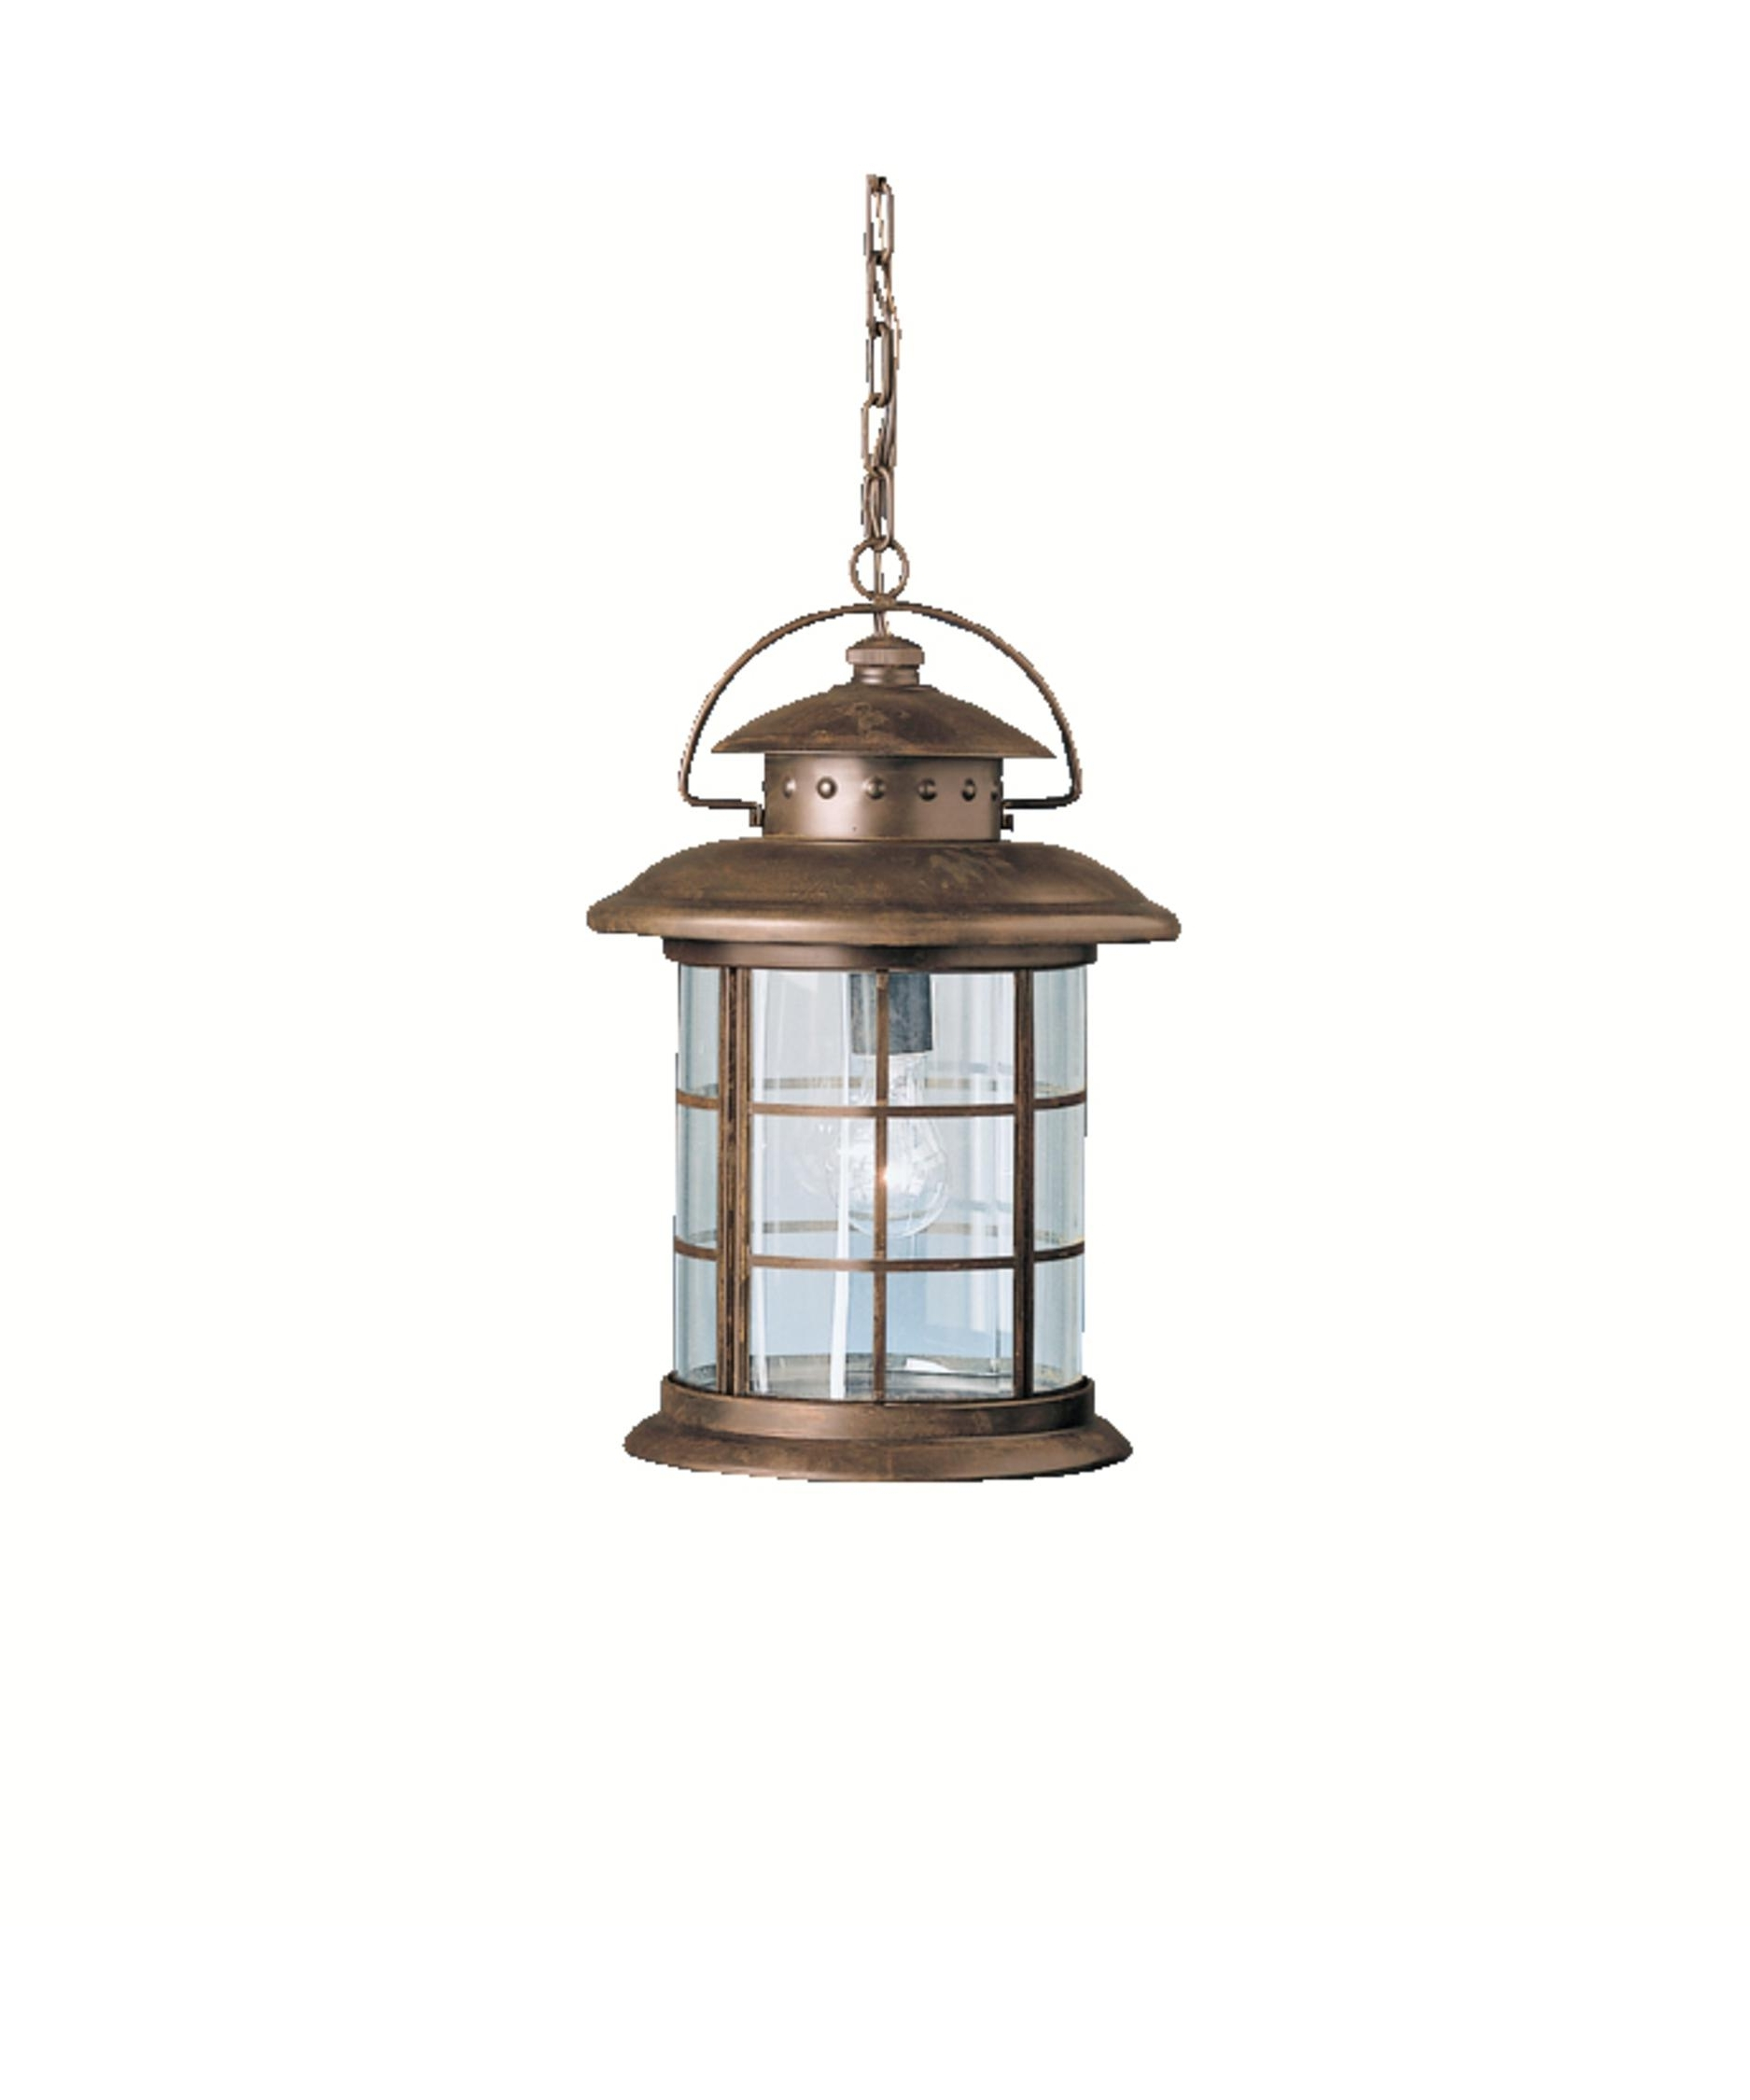 Well Known Kichler 9870 Rustic 11 Inch Wide 1 Light Outdoor Hanging Lantern Pertaining To Outdoor Hanging Garden Lanterns (View 16 of 20)